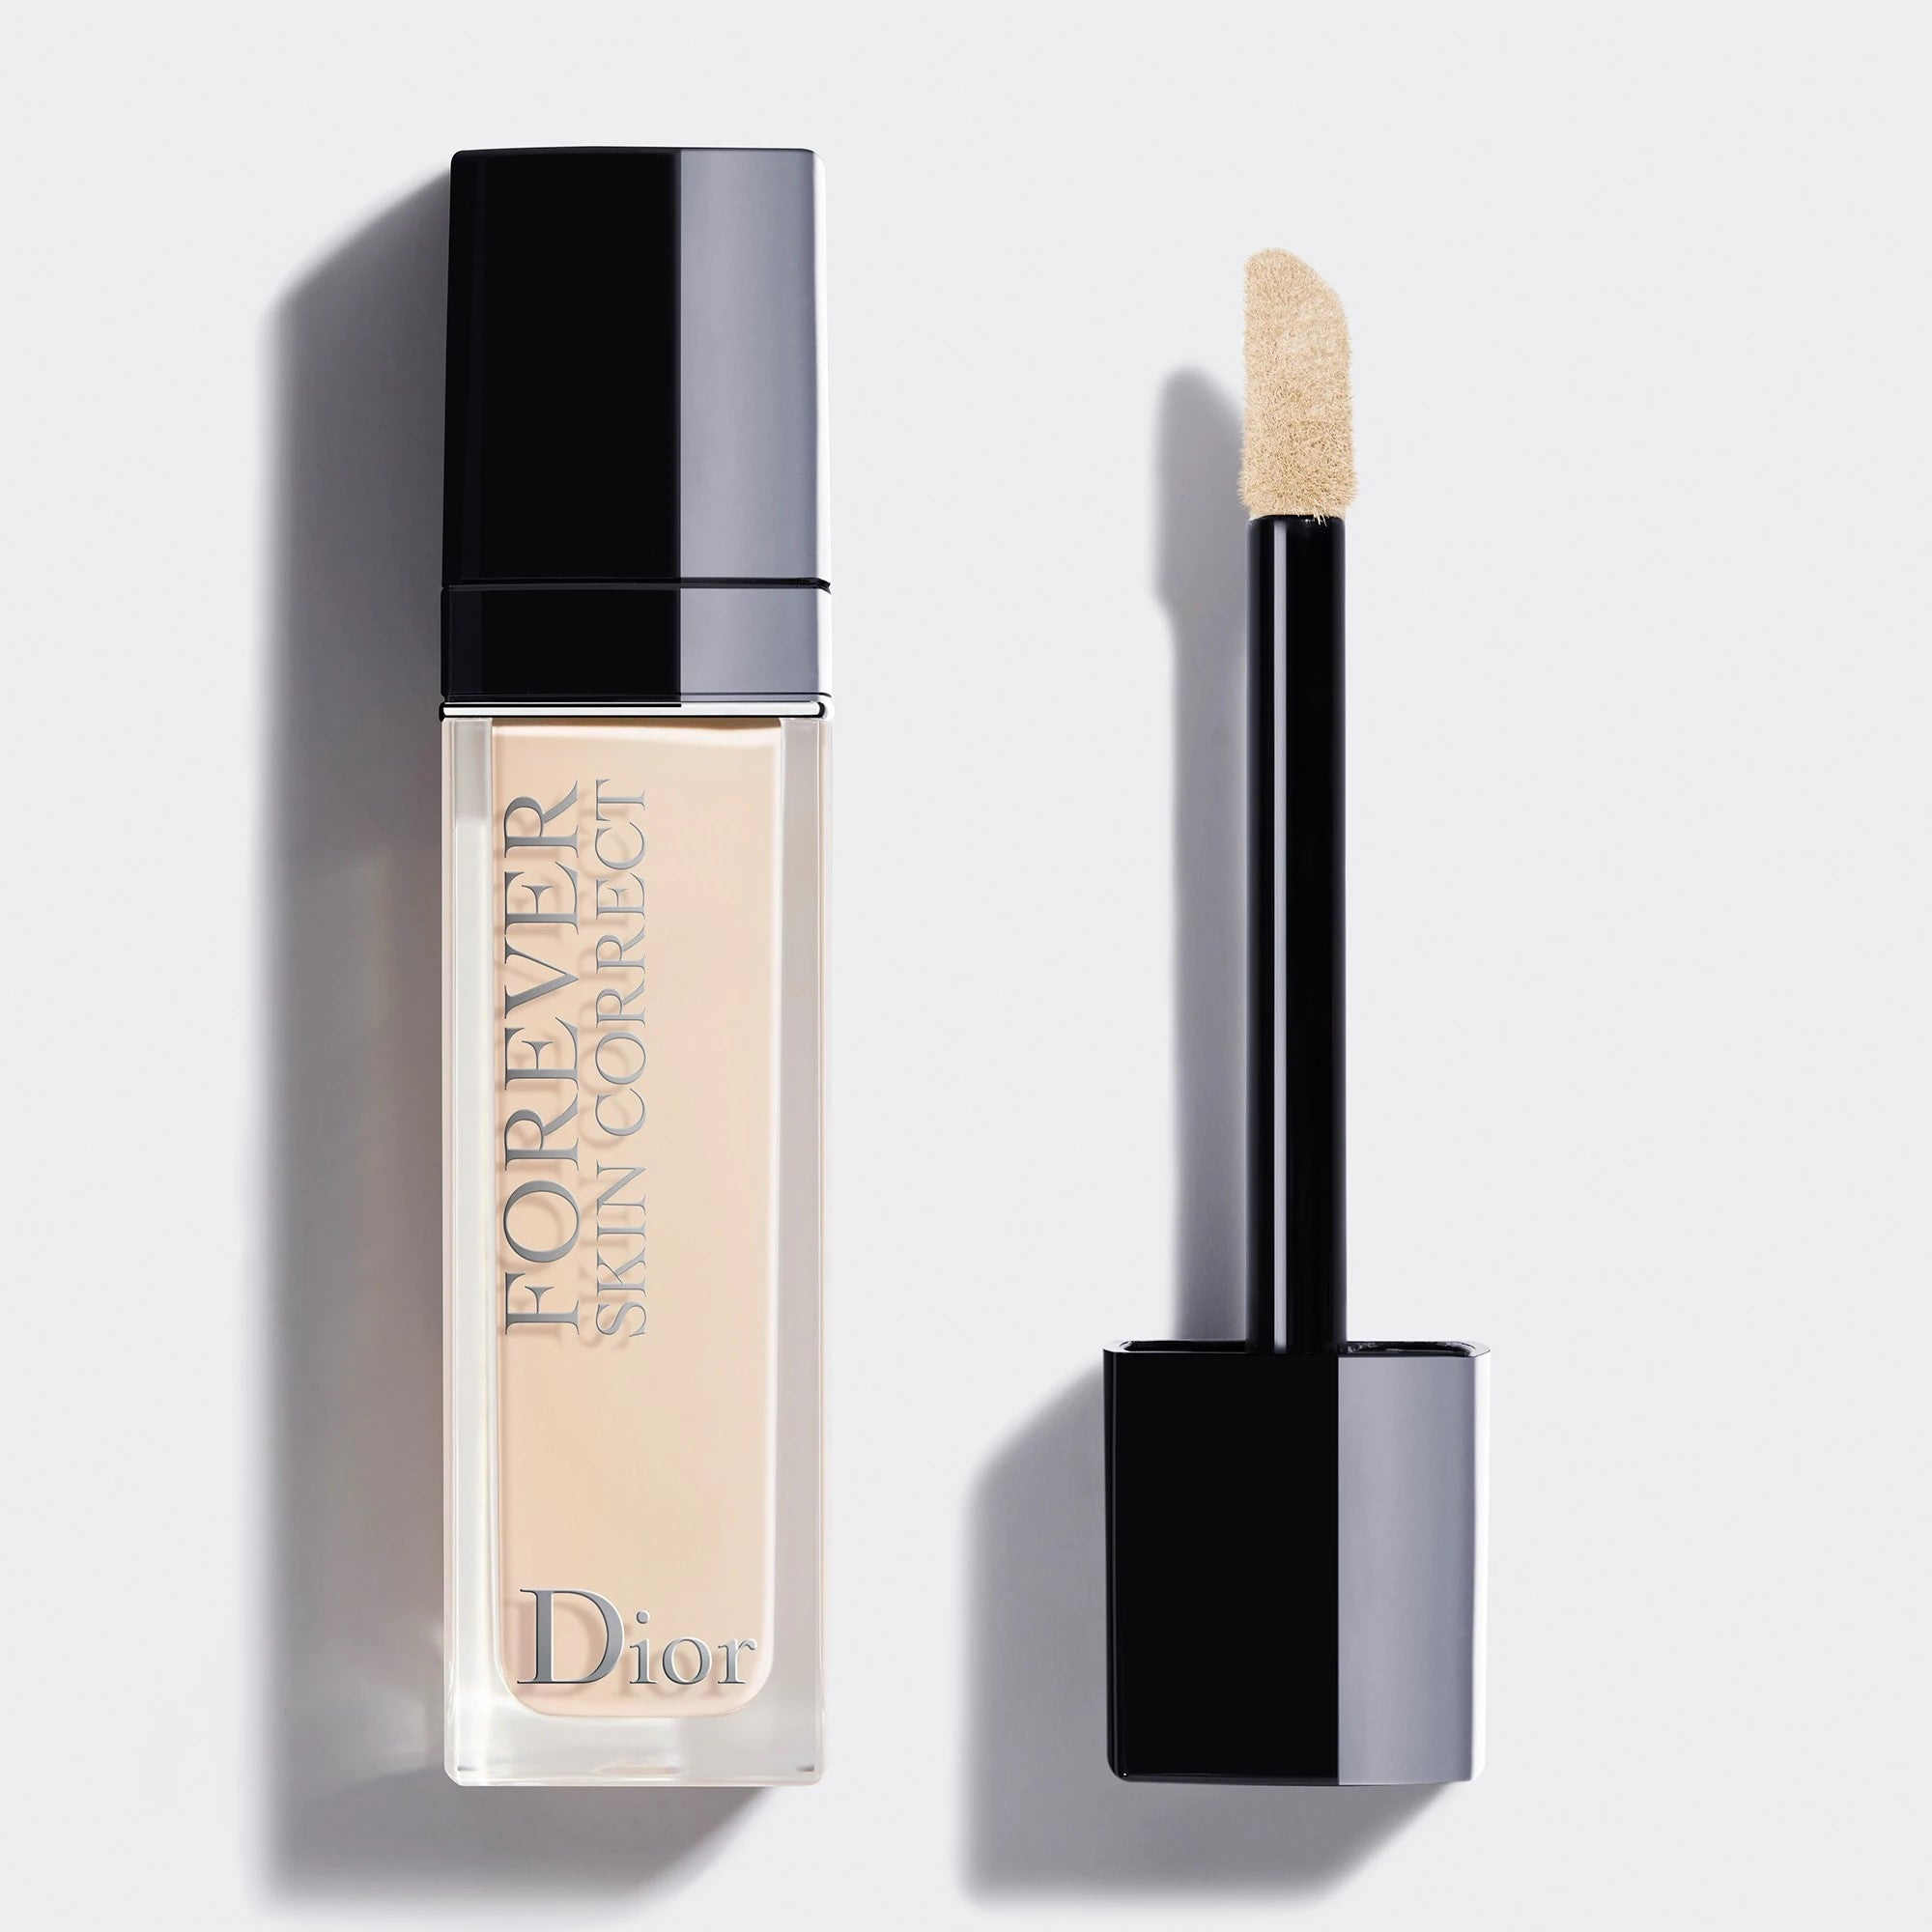 DIOR FOREVER SKIN CORRECT | 24h* wear - full coverage - moisturizing creamy concealer * Instrumental test on 20 subjects.